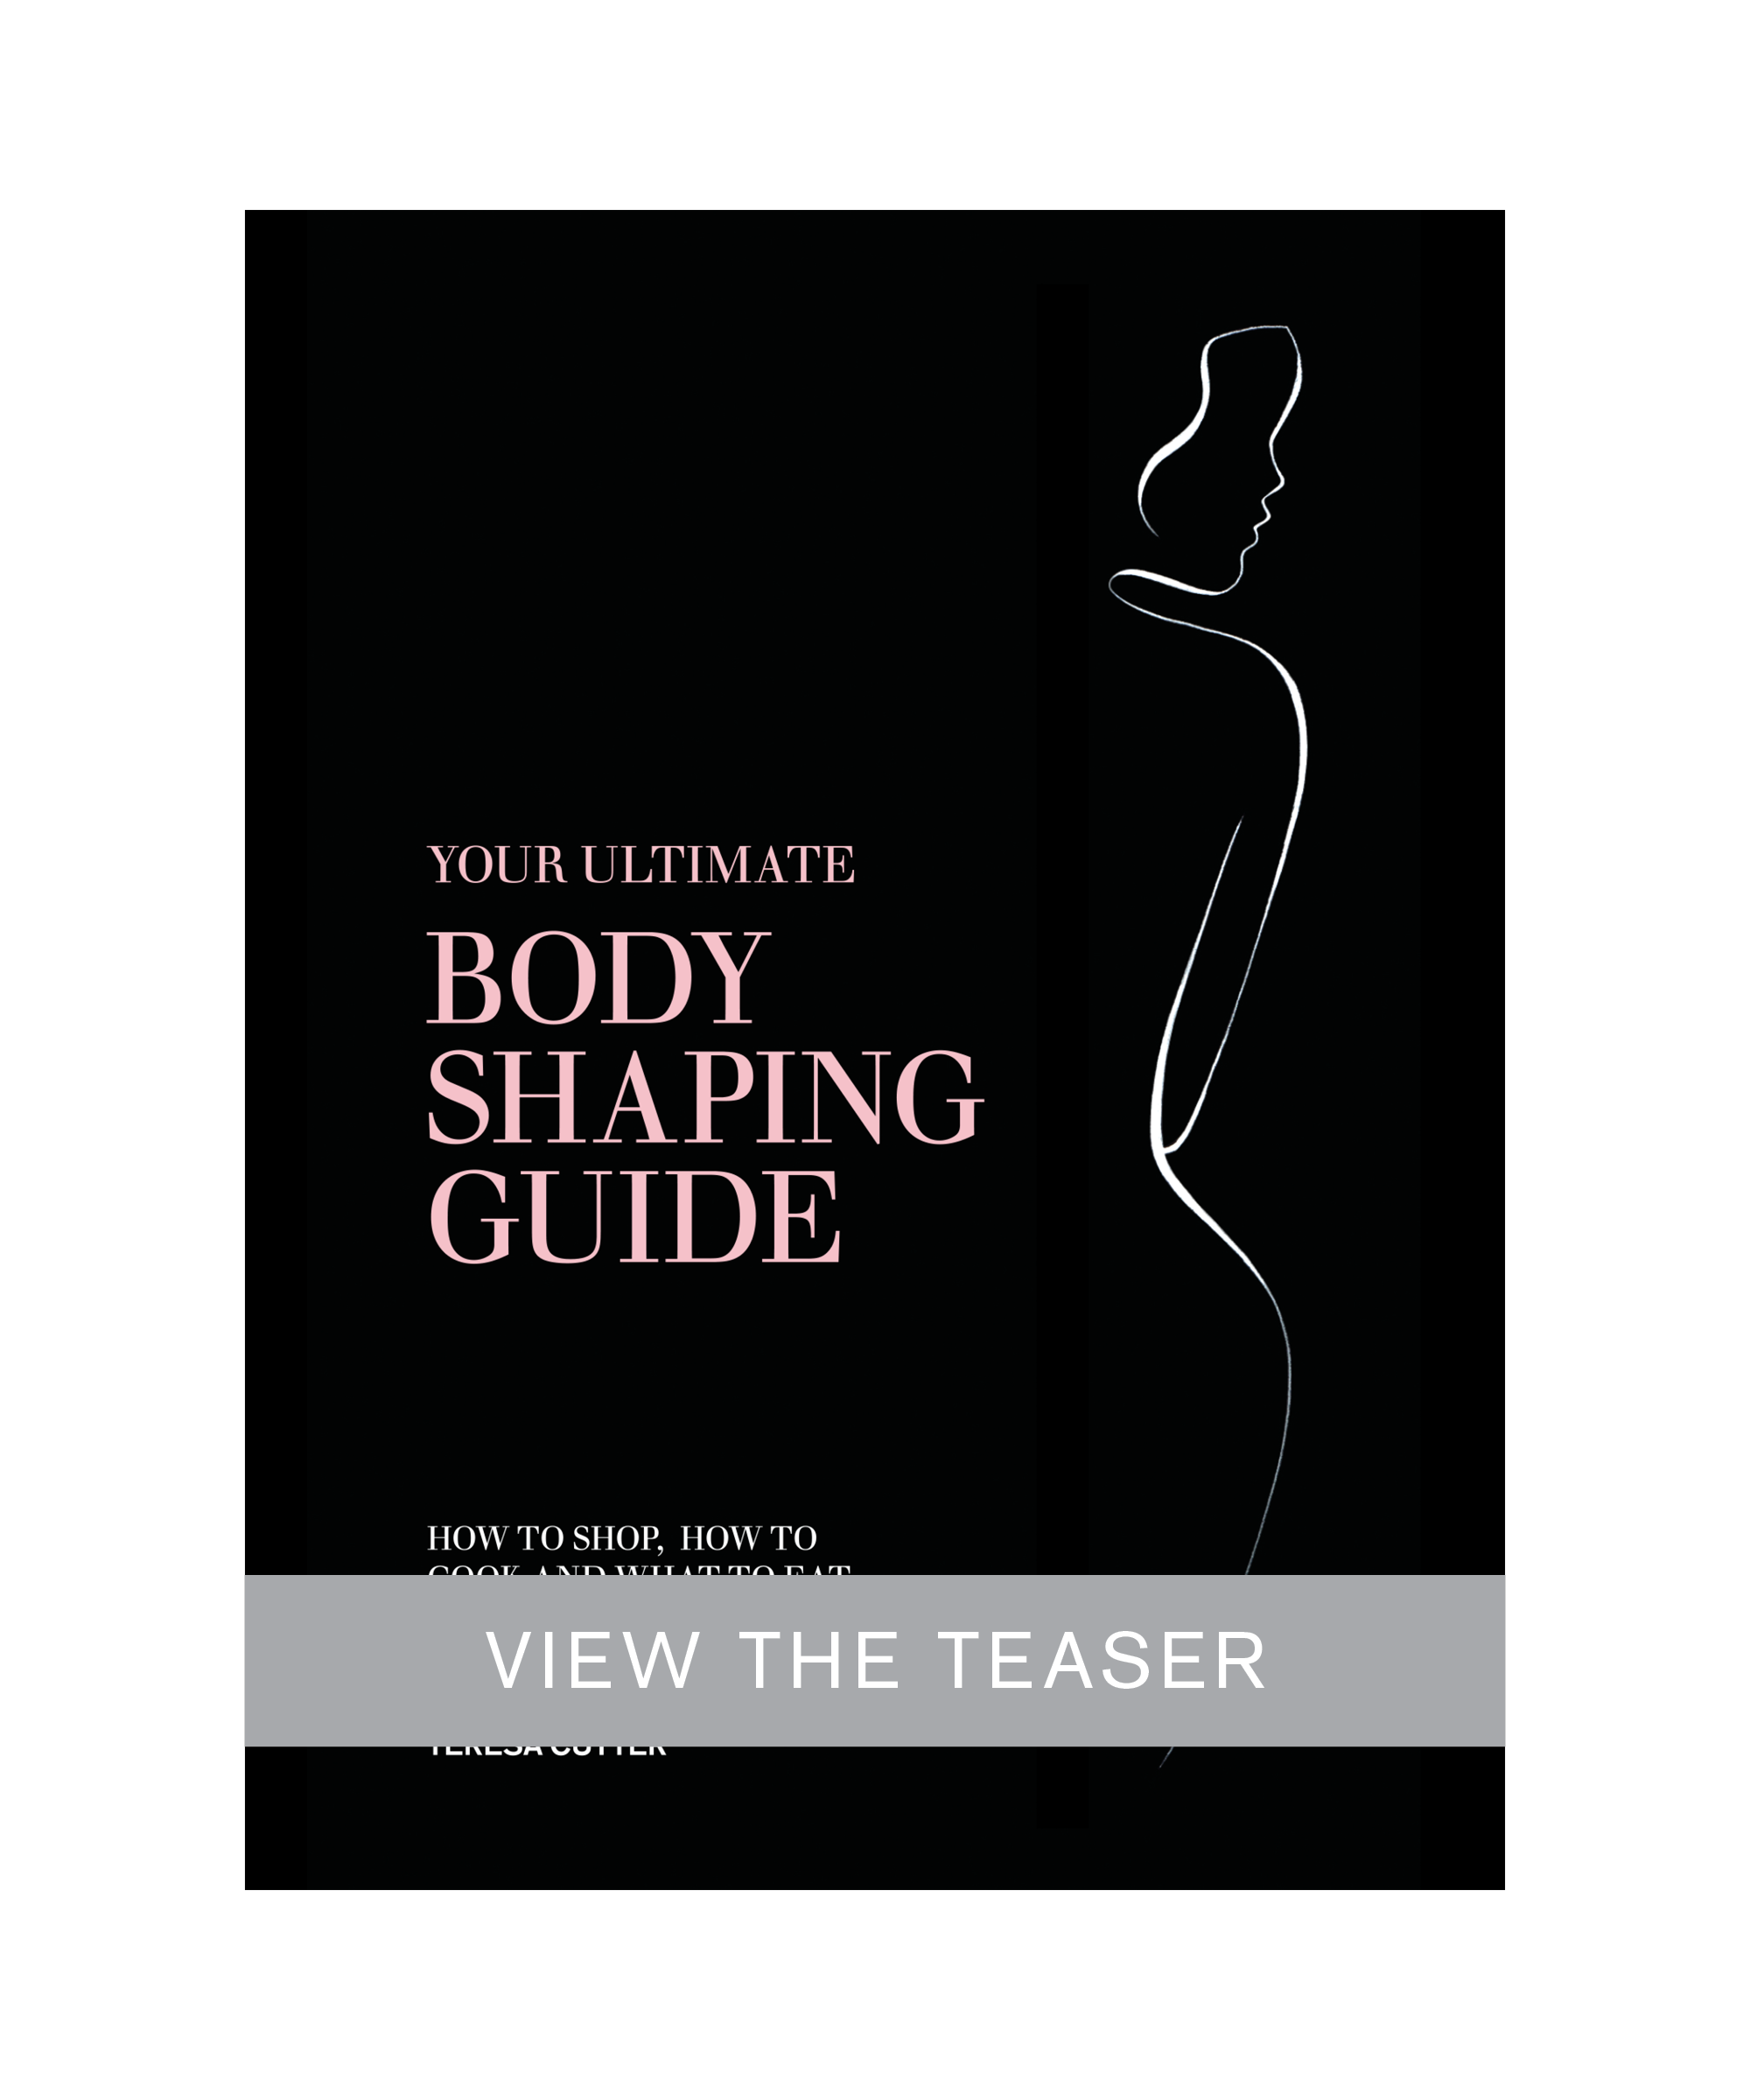 Your Ultimate Body Shaping Guide